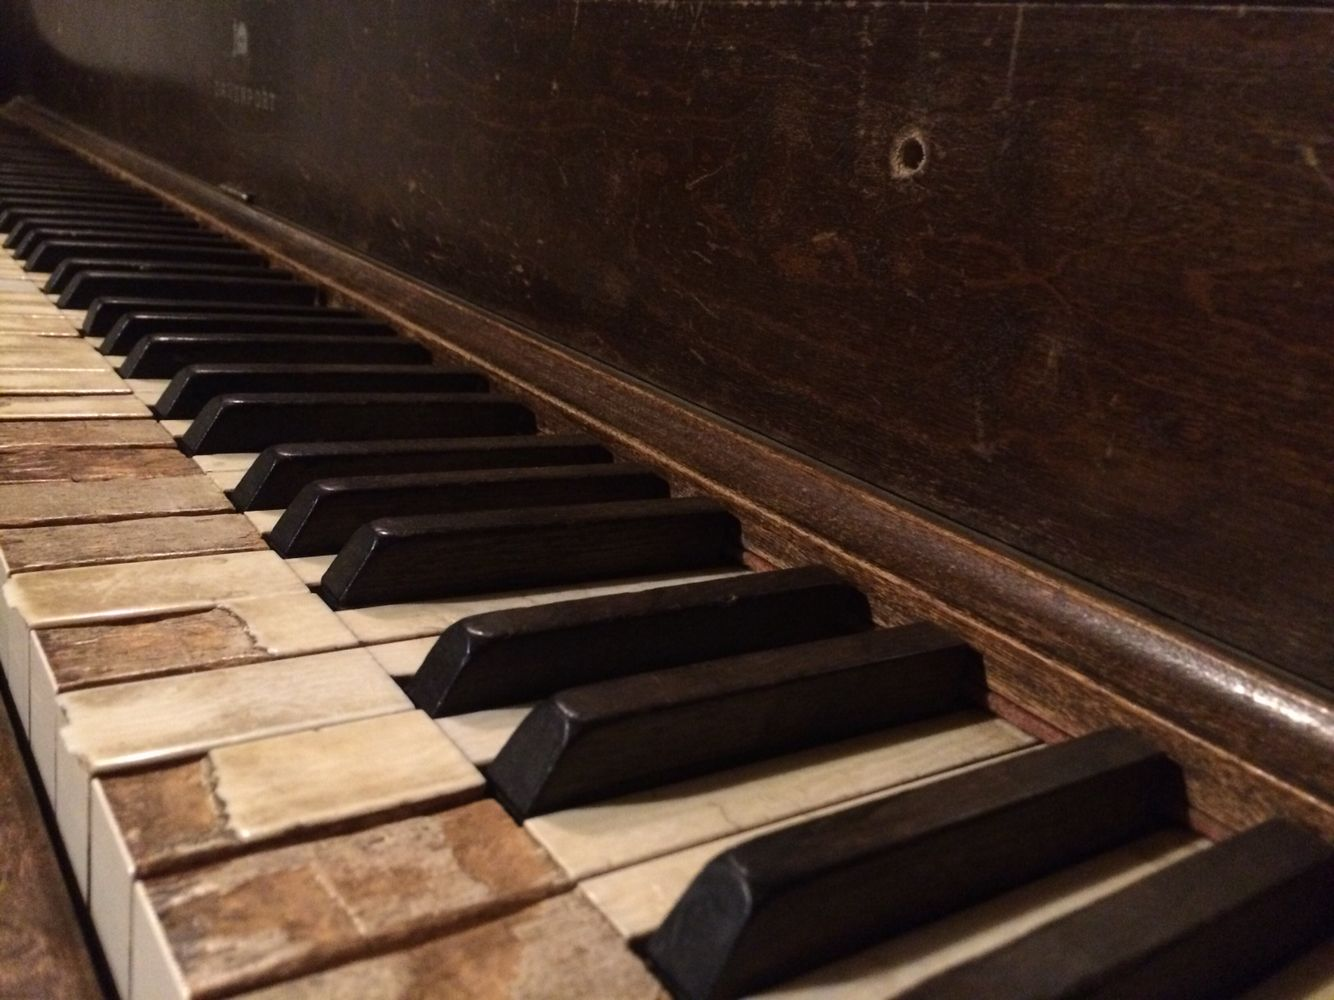 Old pianos make the prettiest of pictures!